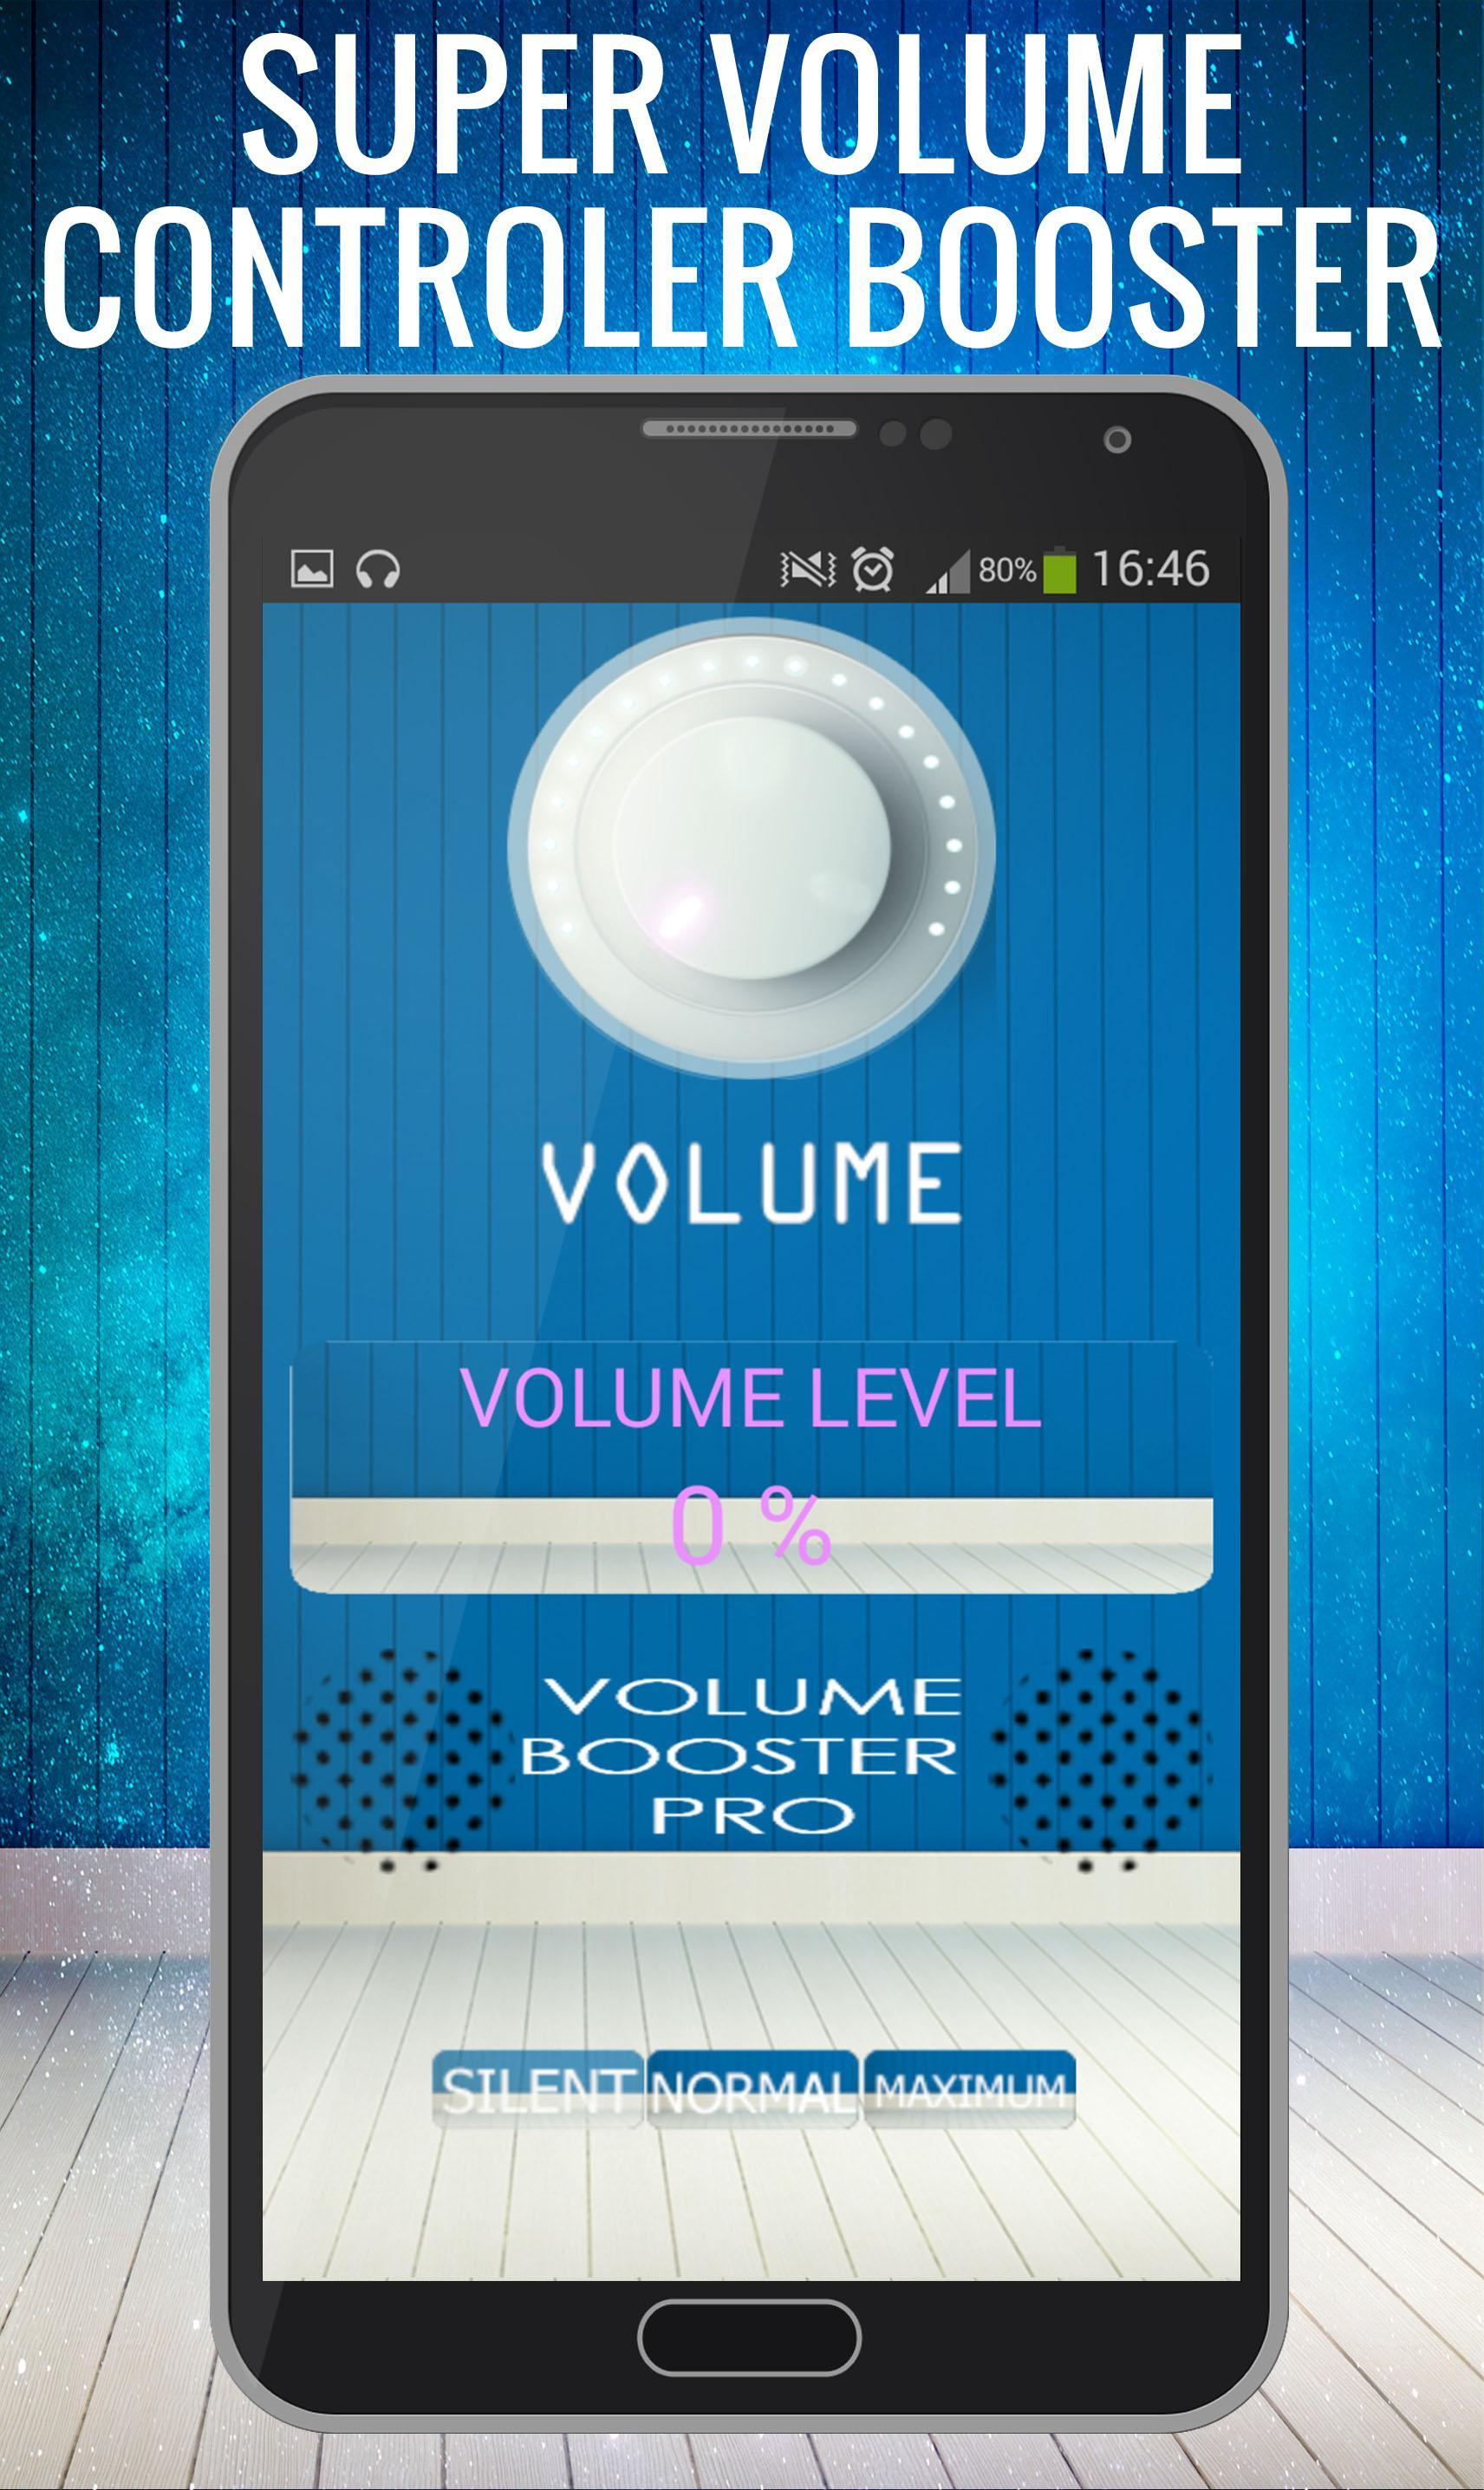 Super Loud Volume Controler Booster for Android - APK Download